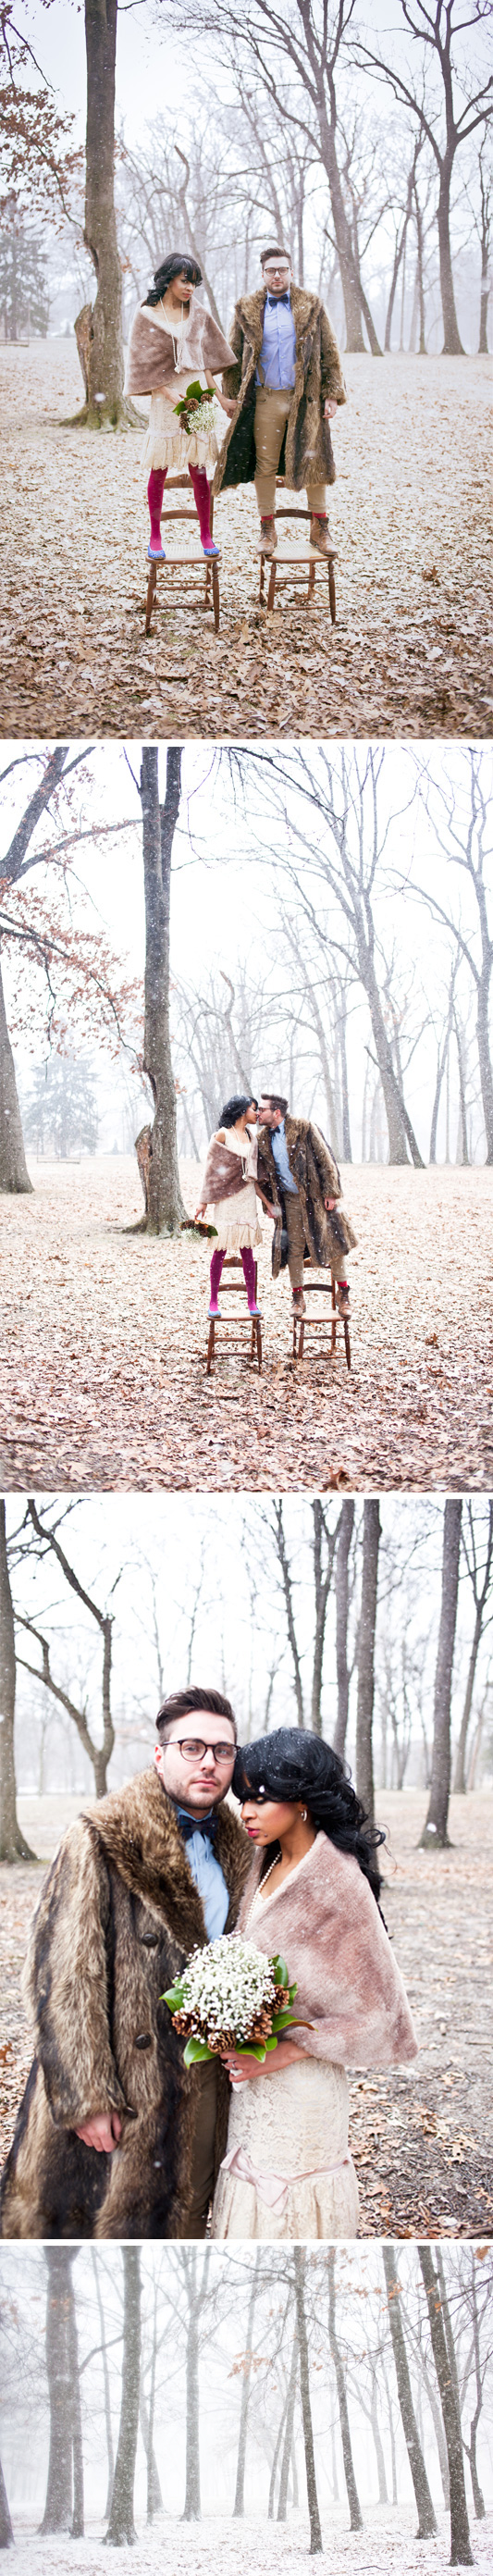 winterweddingshoot13